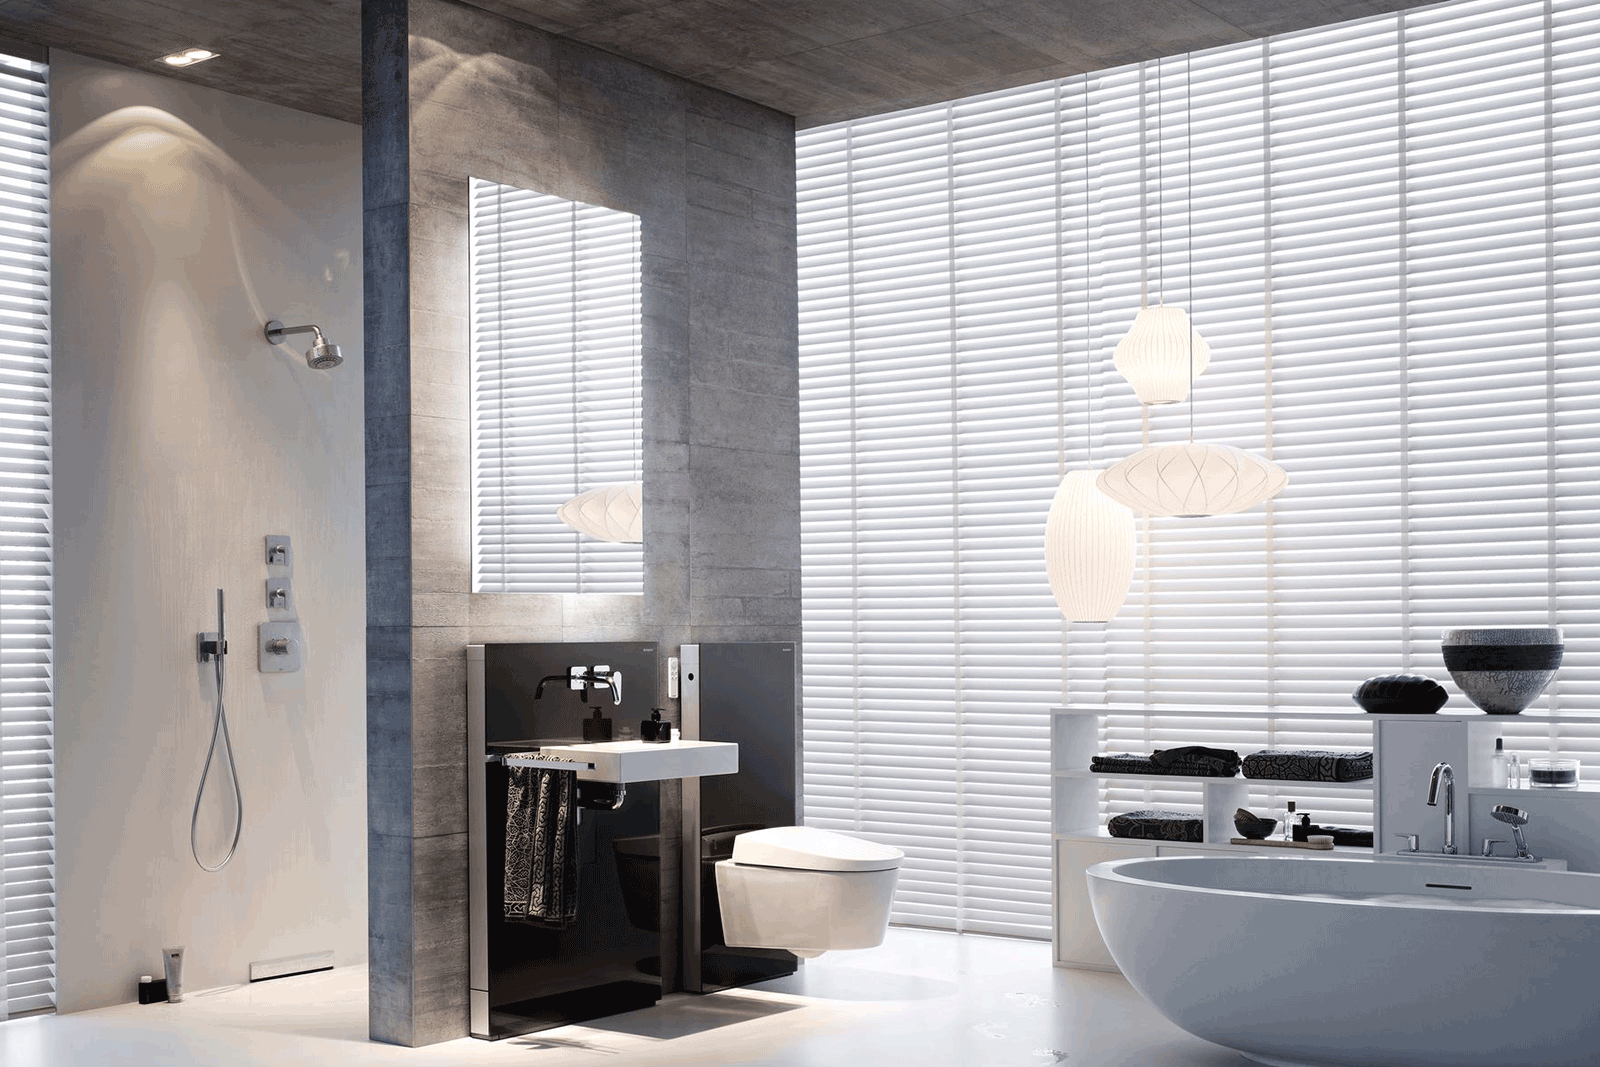 Geberit aquaclean sela bathroom